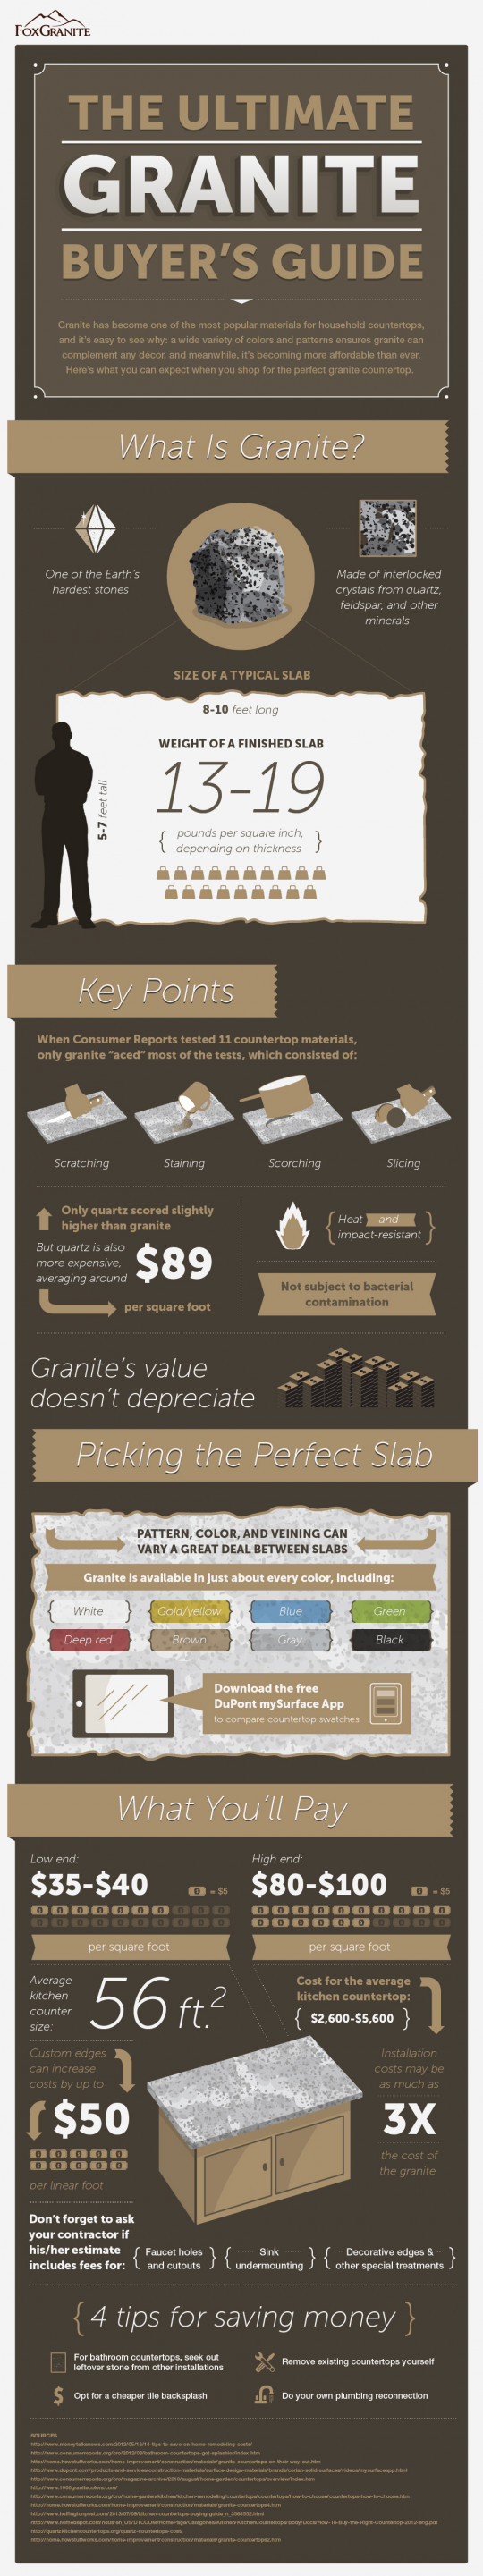 The Complete Guide About Granite Sheets for Countertops